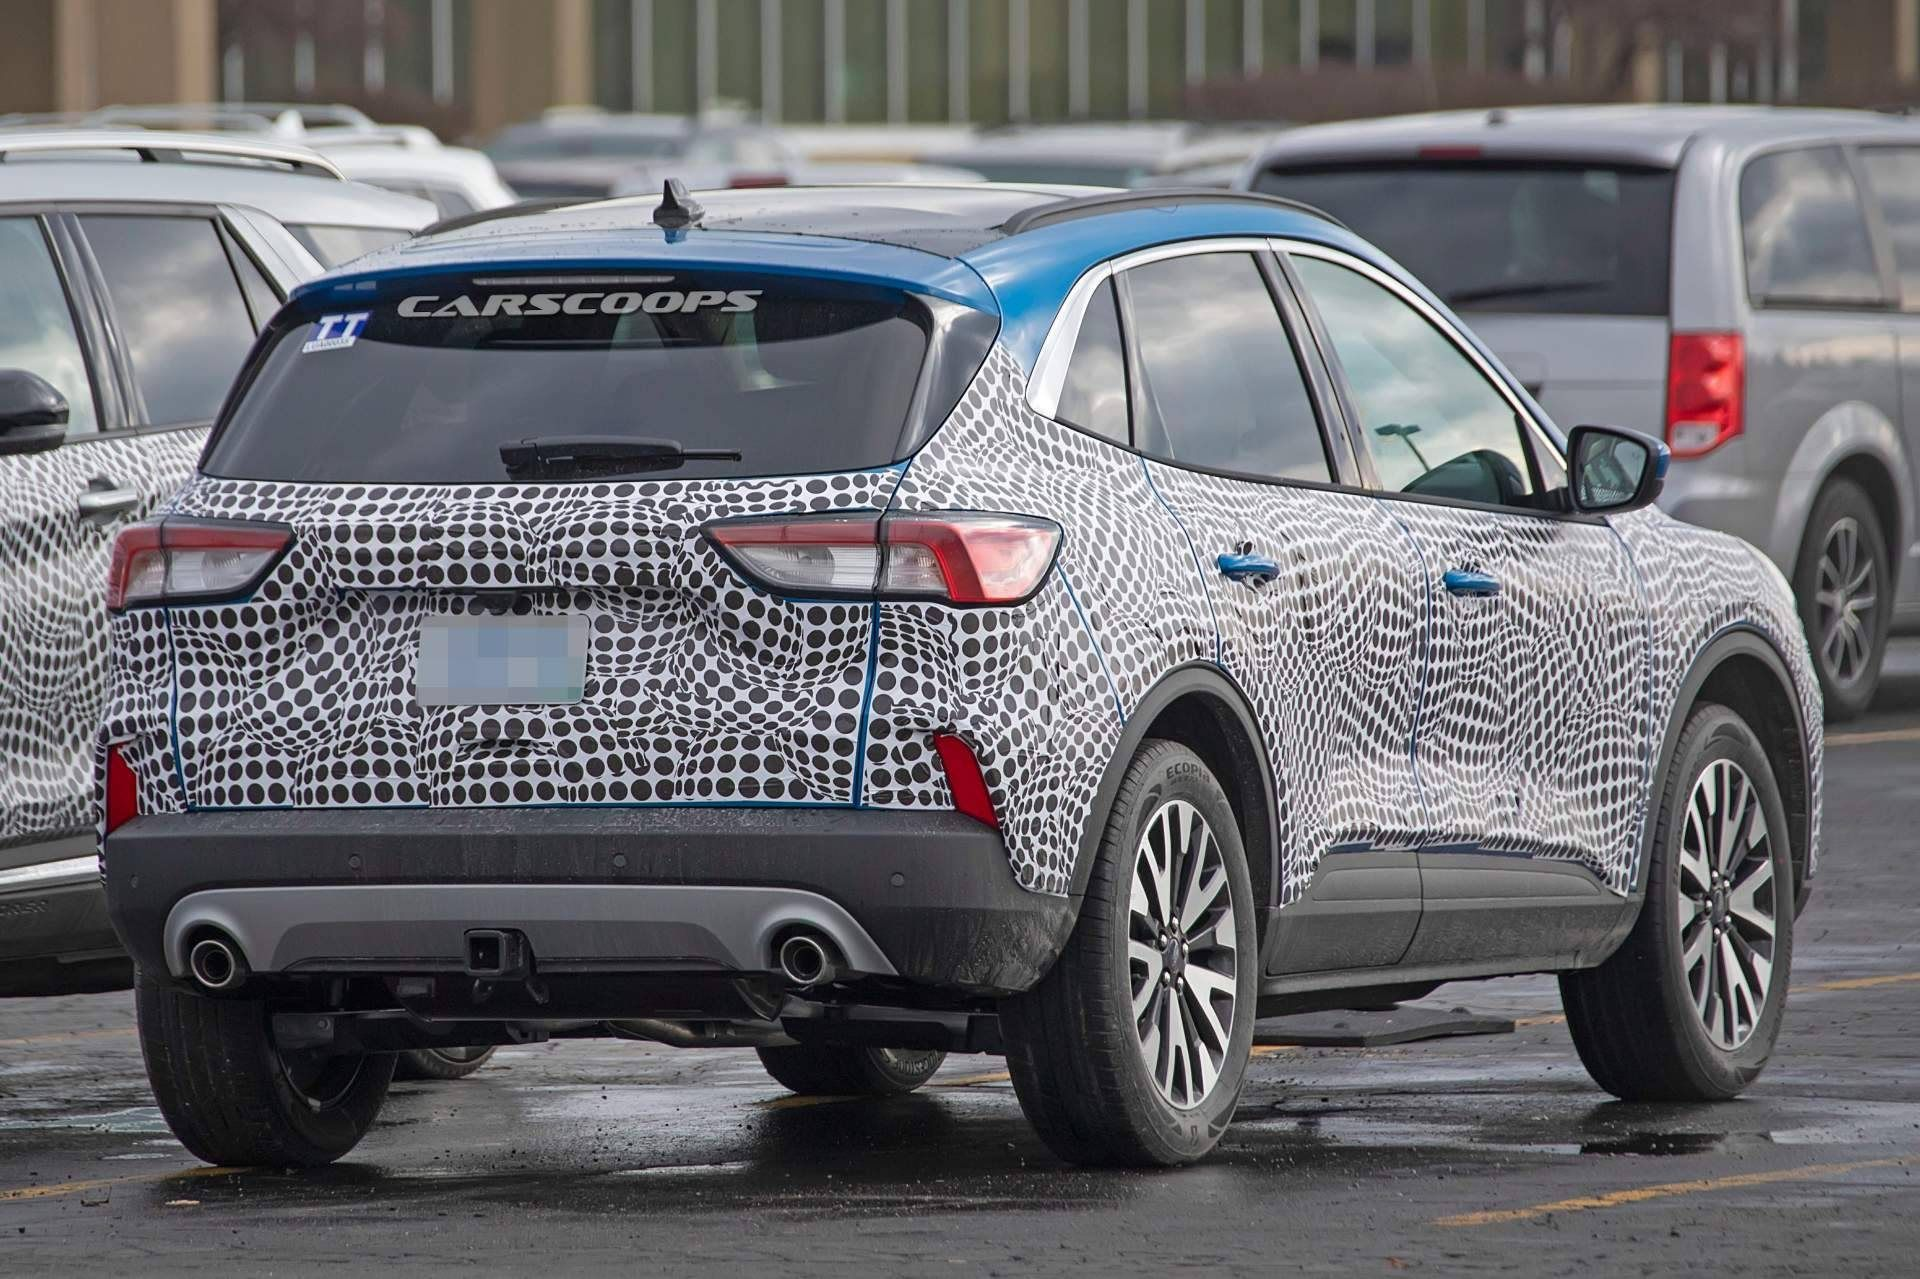 2021 ford Escape Spy Shoot in 2020 Ford escape, Ford